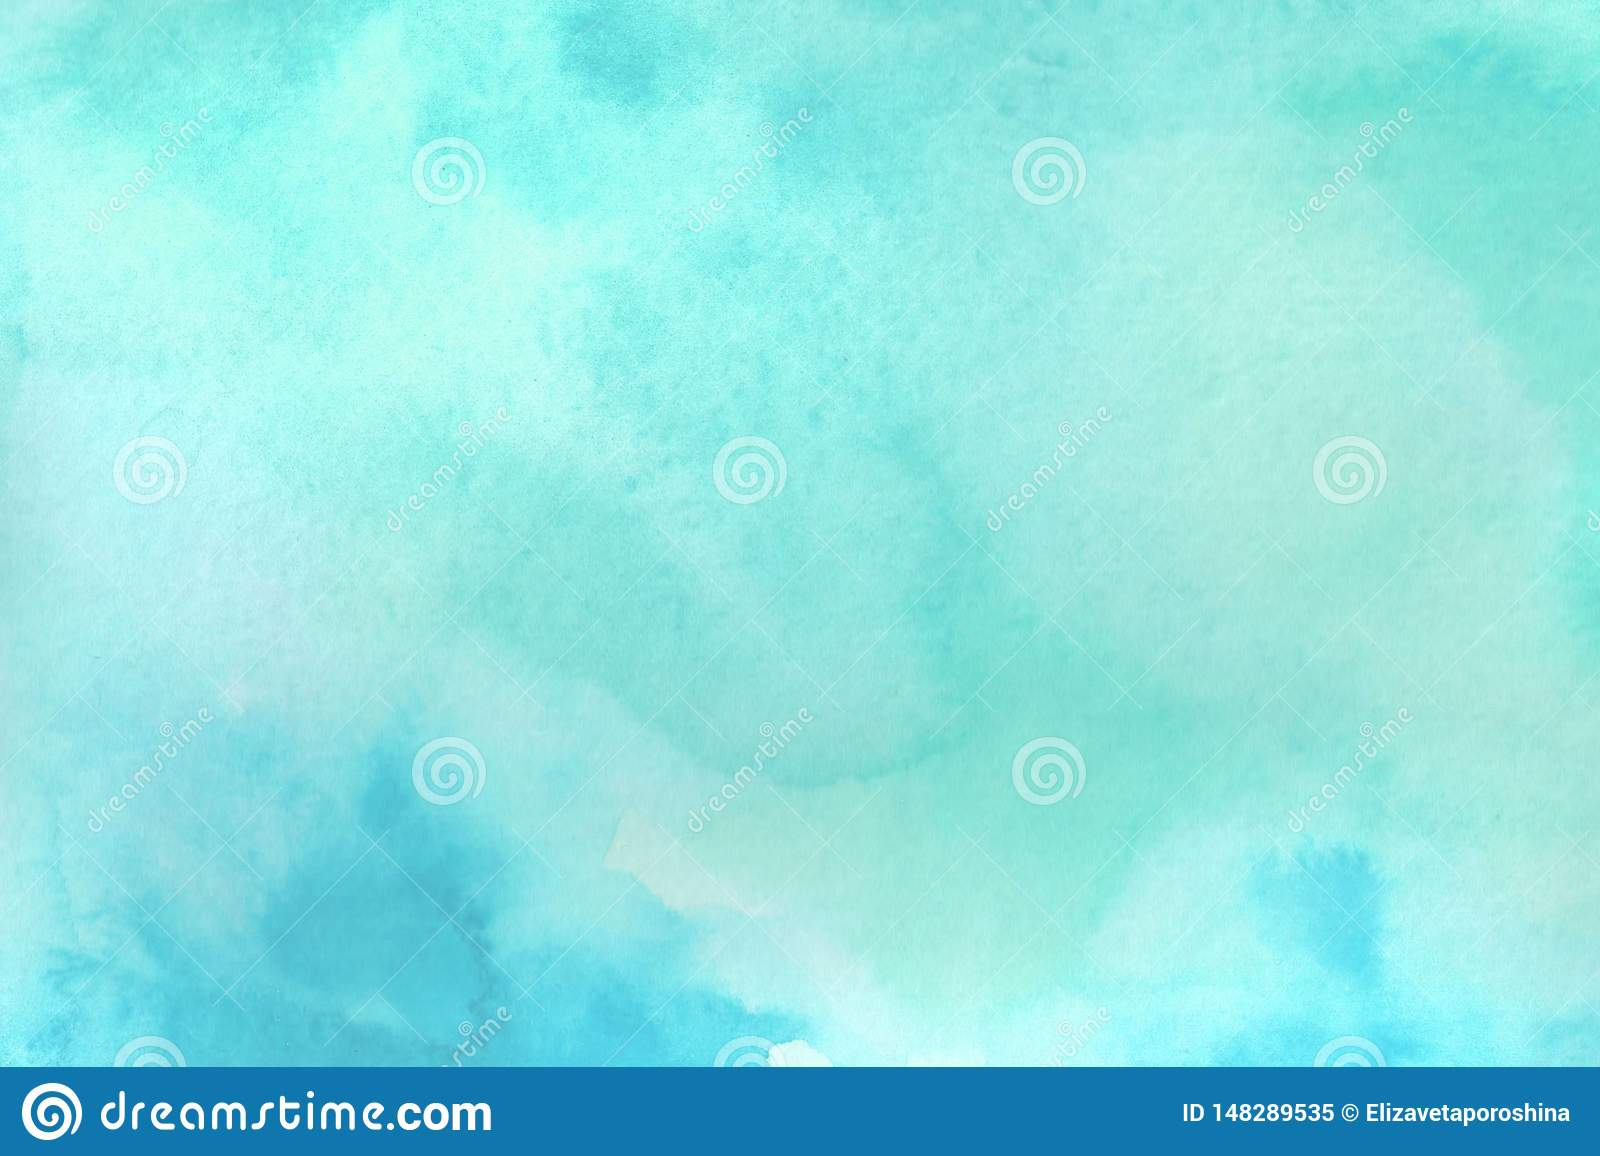 Watercolor background illustration. Watercolor gradient as marble texture